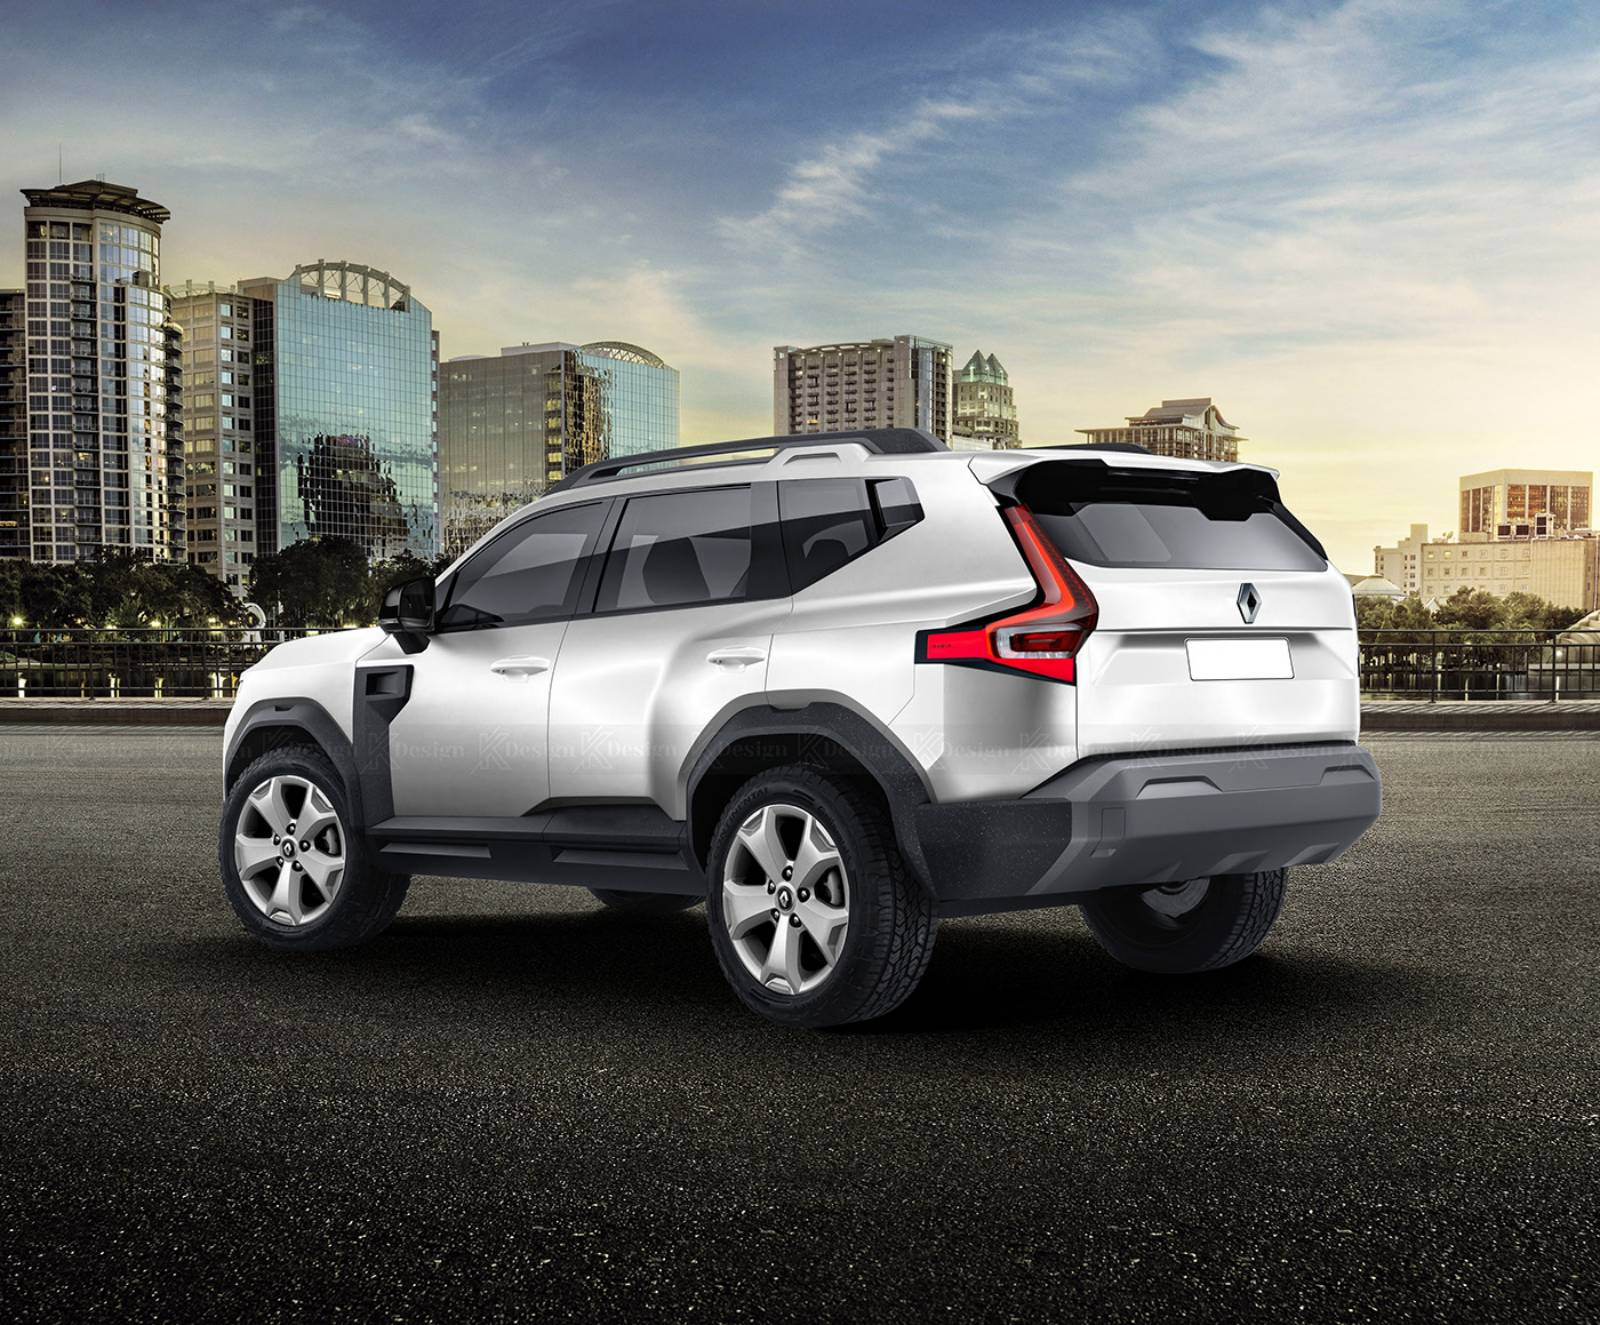 DACIA Duster seats exclusively